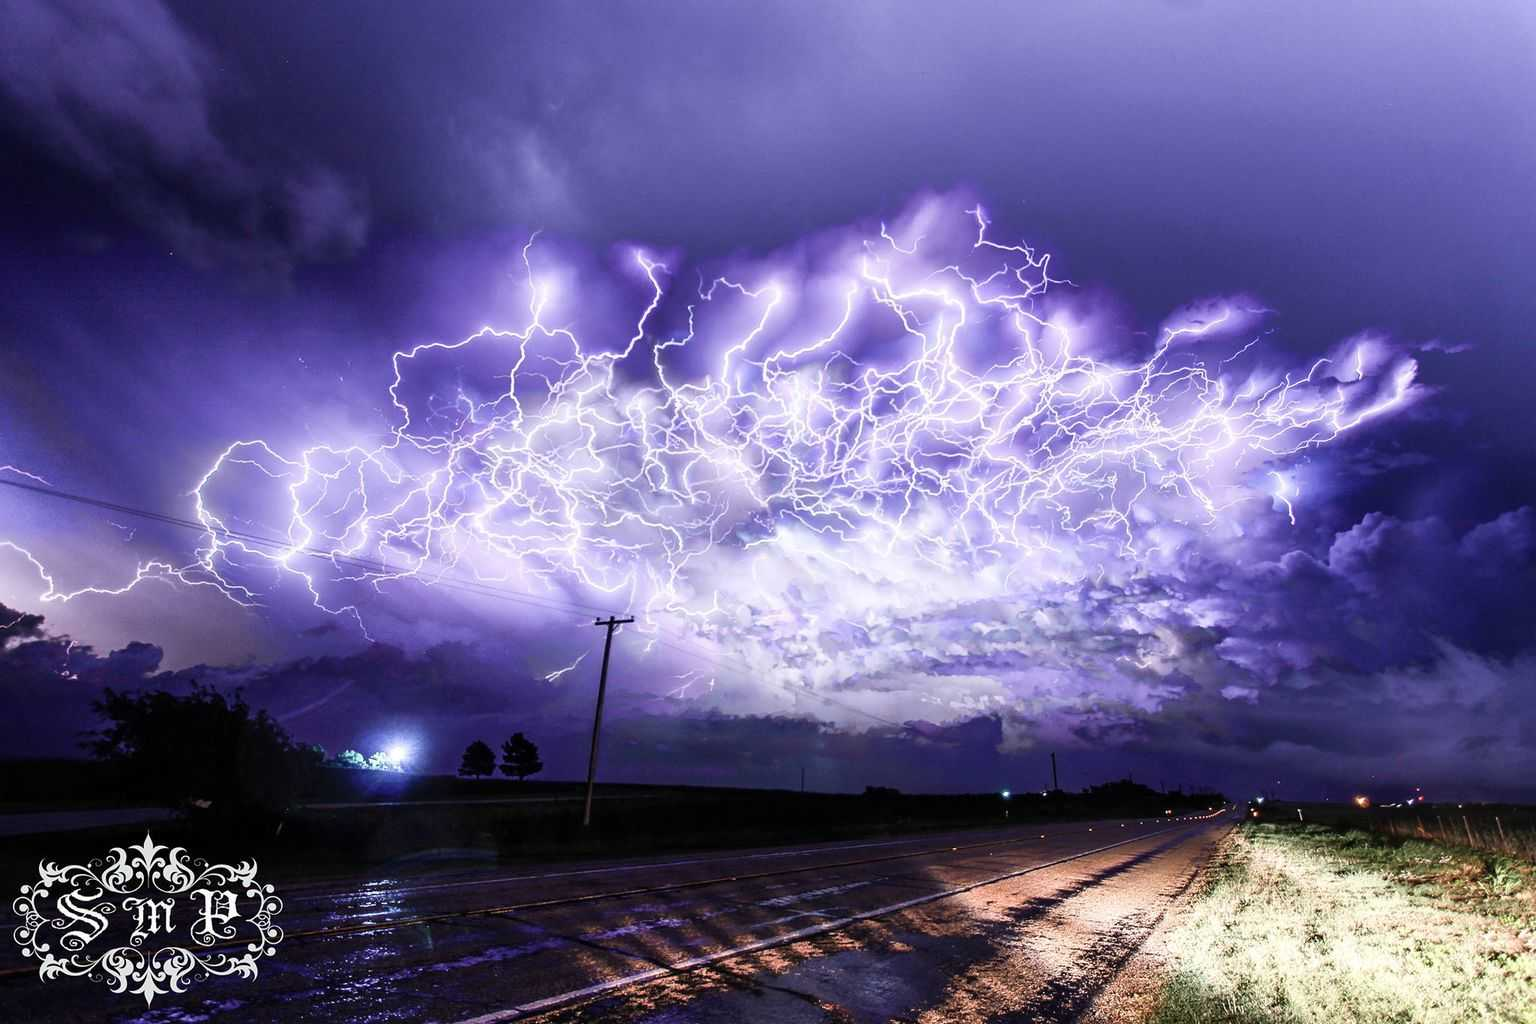 It's been a while but I finally have something worth sharing...This is a 75 Image stack from the electric thunderstorm last night (4/20/17) South of Vernon, TX... Looking South/ Southeast  ZERO editing (besides stacking)